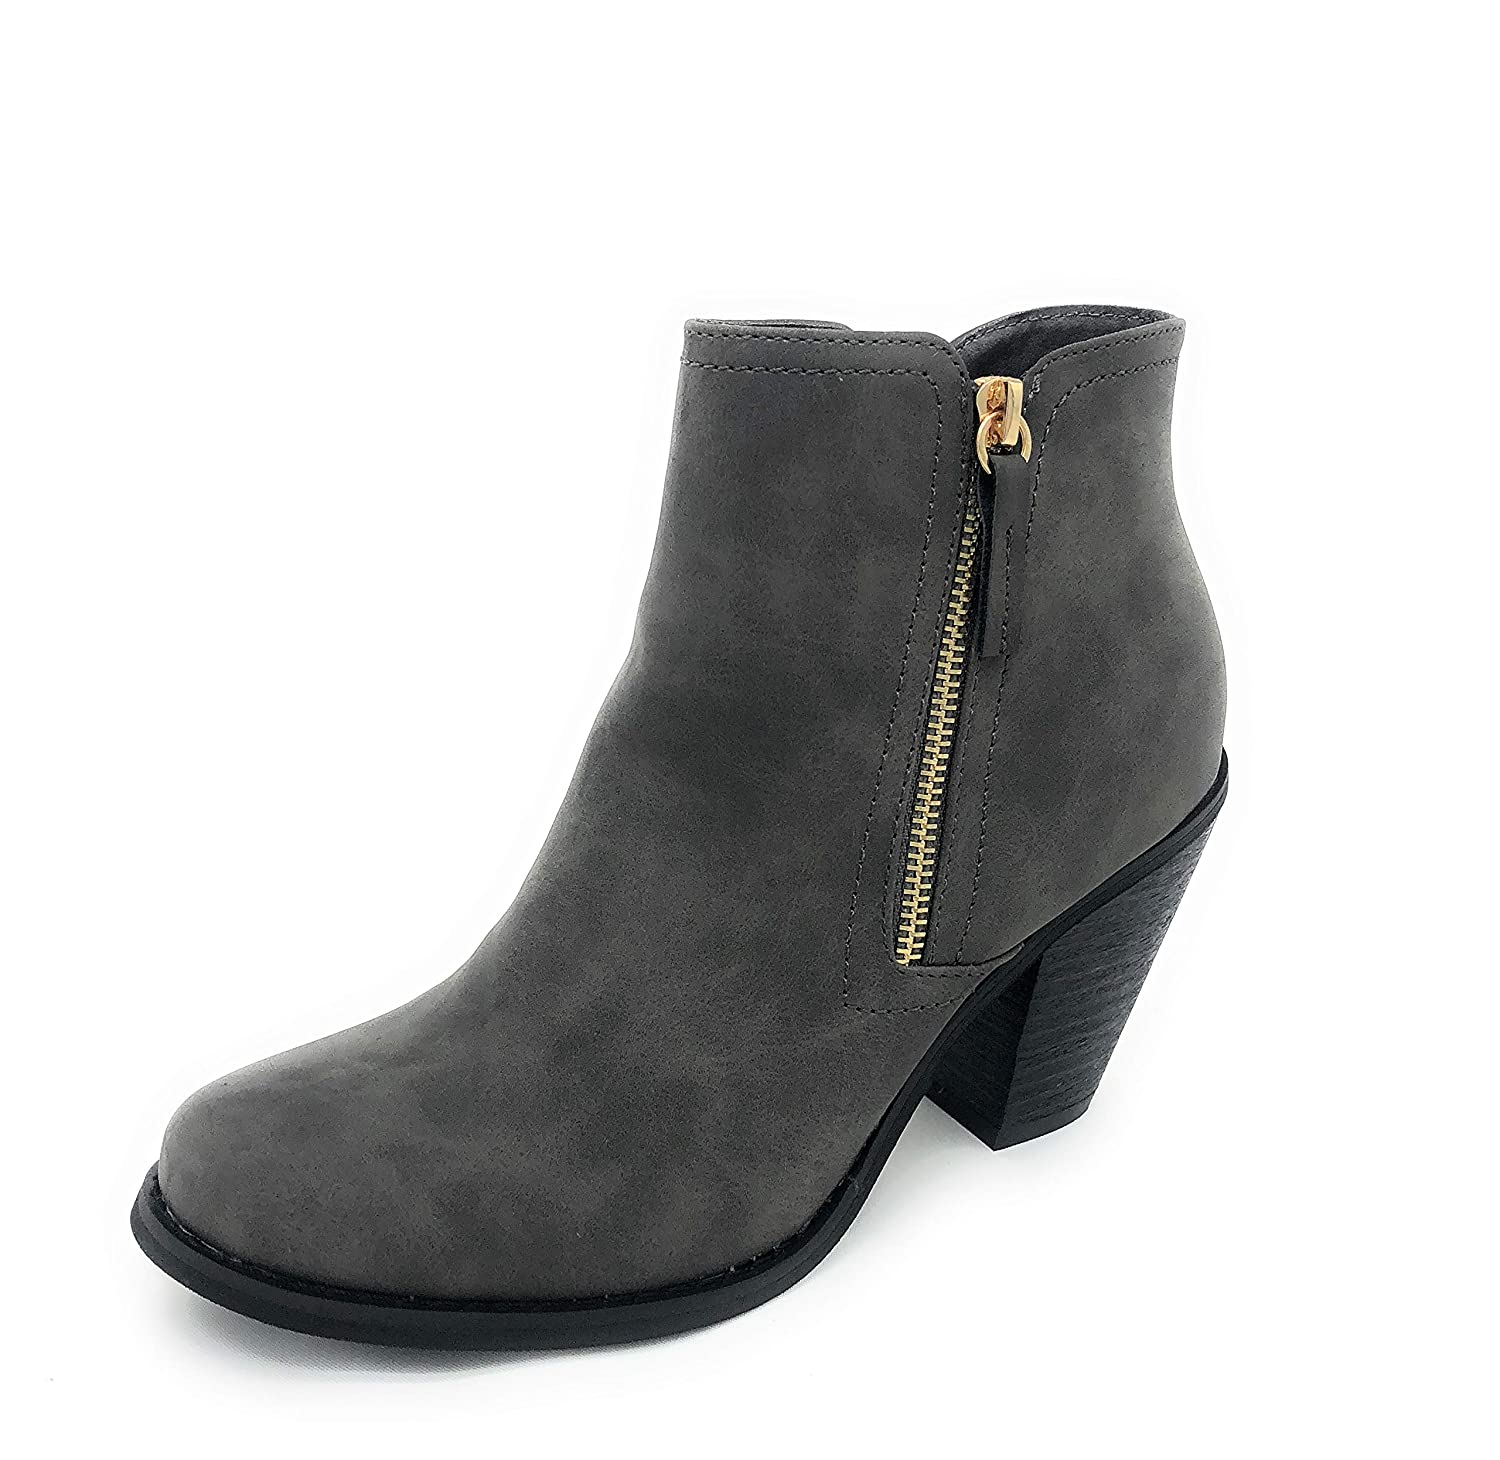 Grey-irene-08 SOLE COLLECTION Faux Leather Suede Strap Side Zipper Chunky Block Heels Dress Ankle Boots